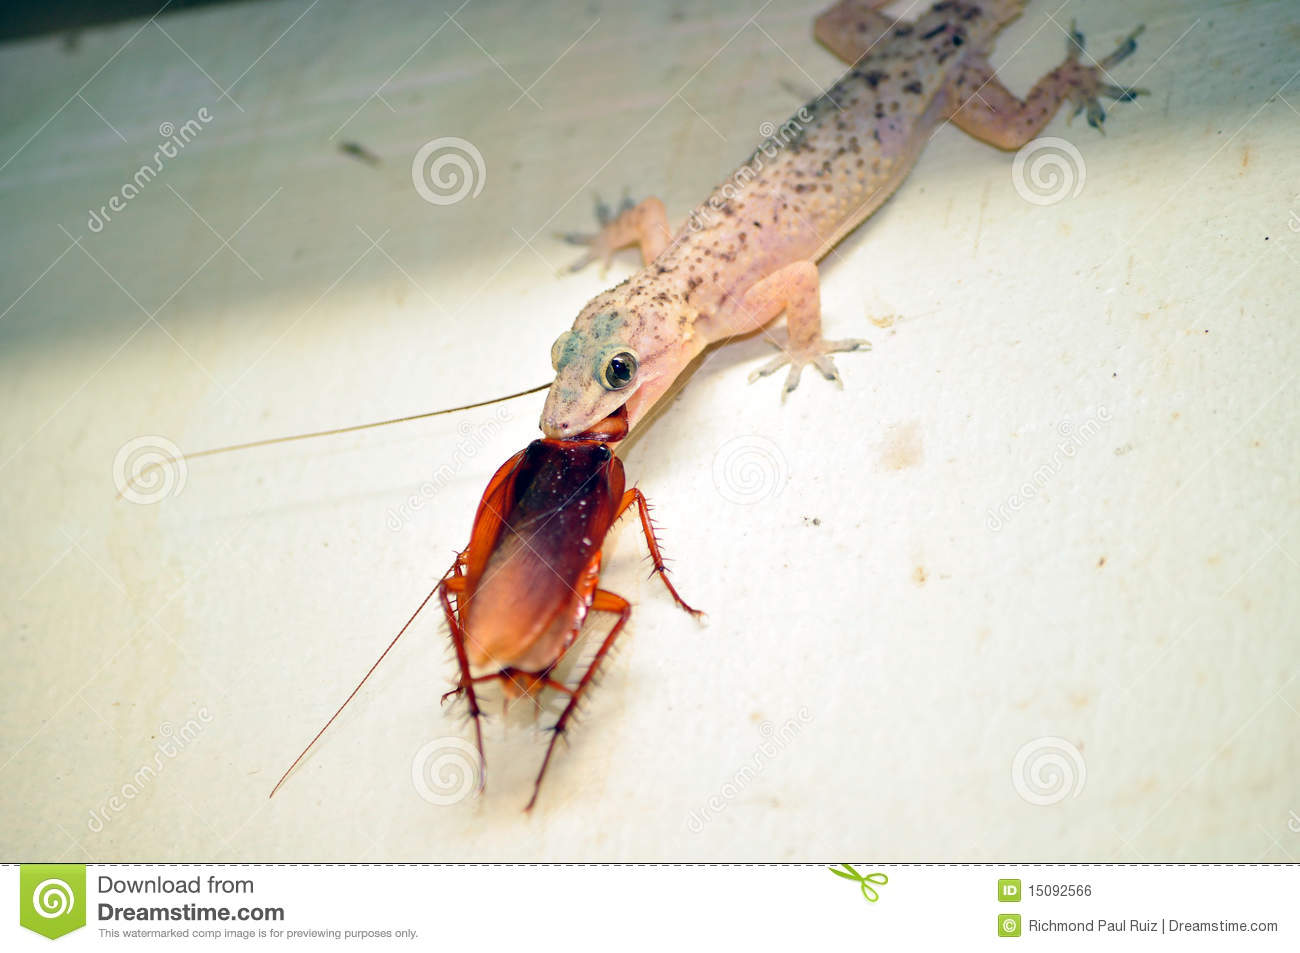 Lizard Eating Cockroach Royalty Free Stock Image - Image ...